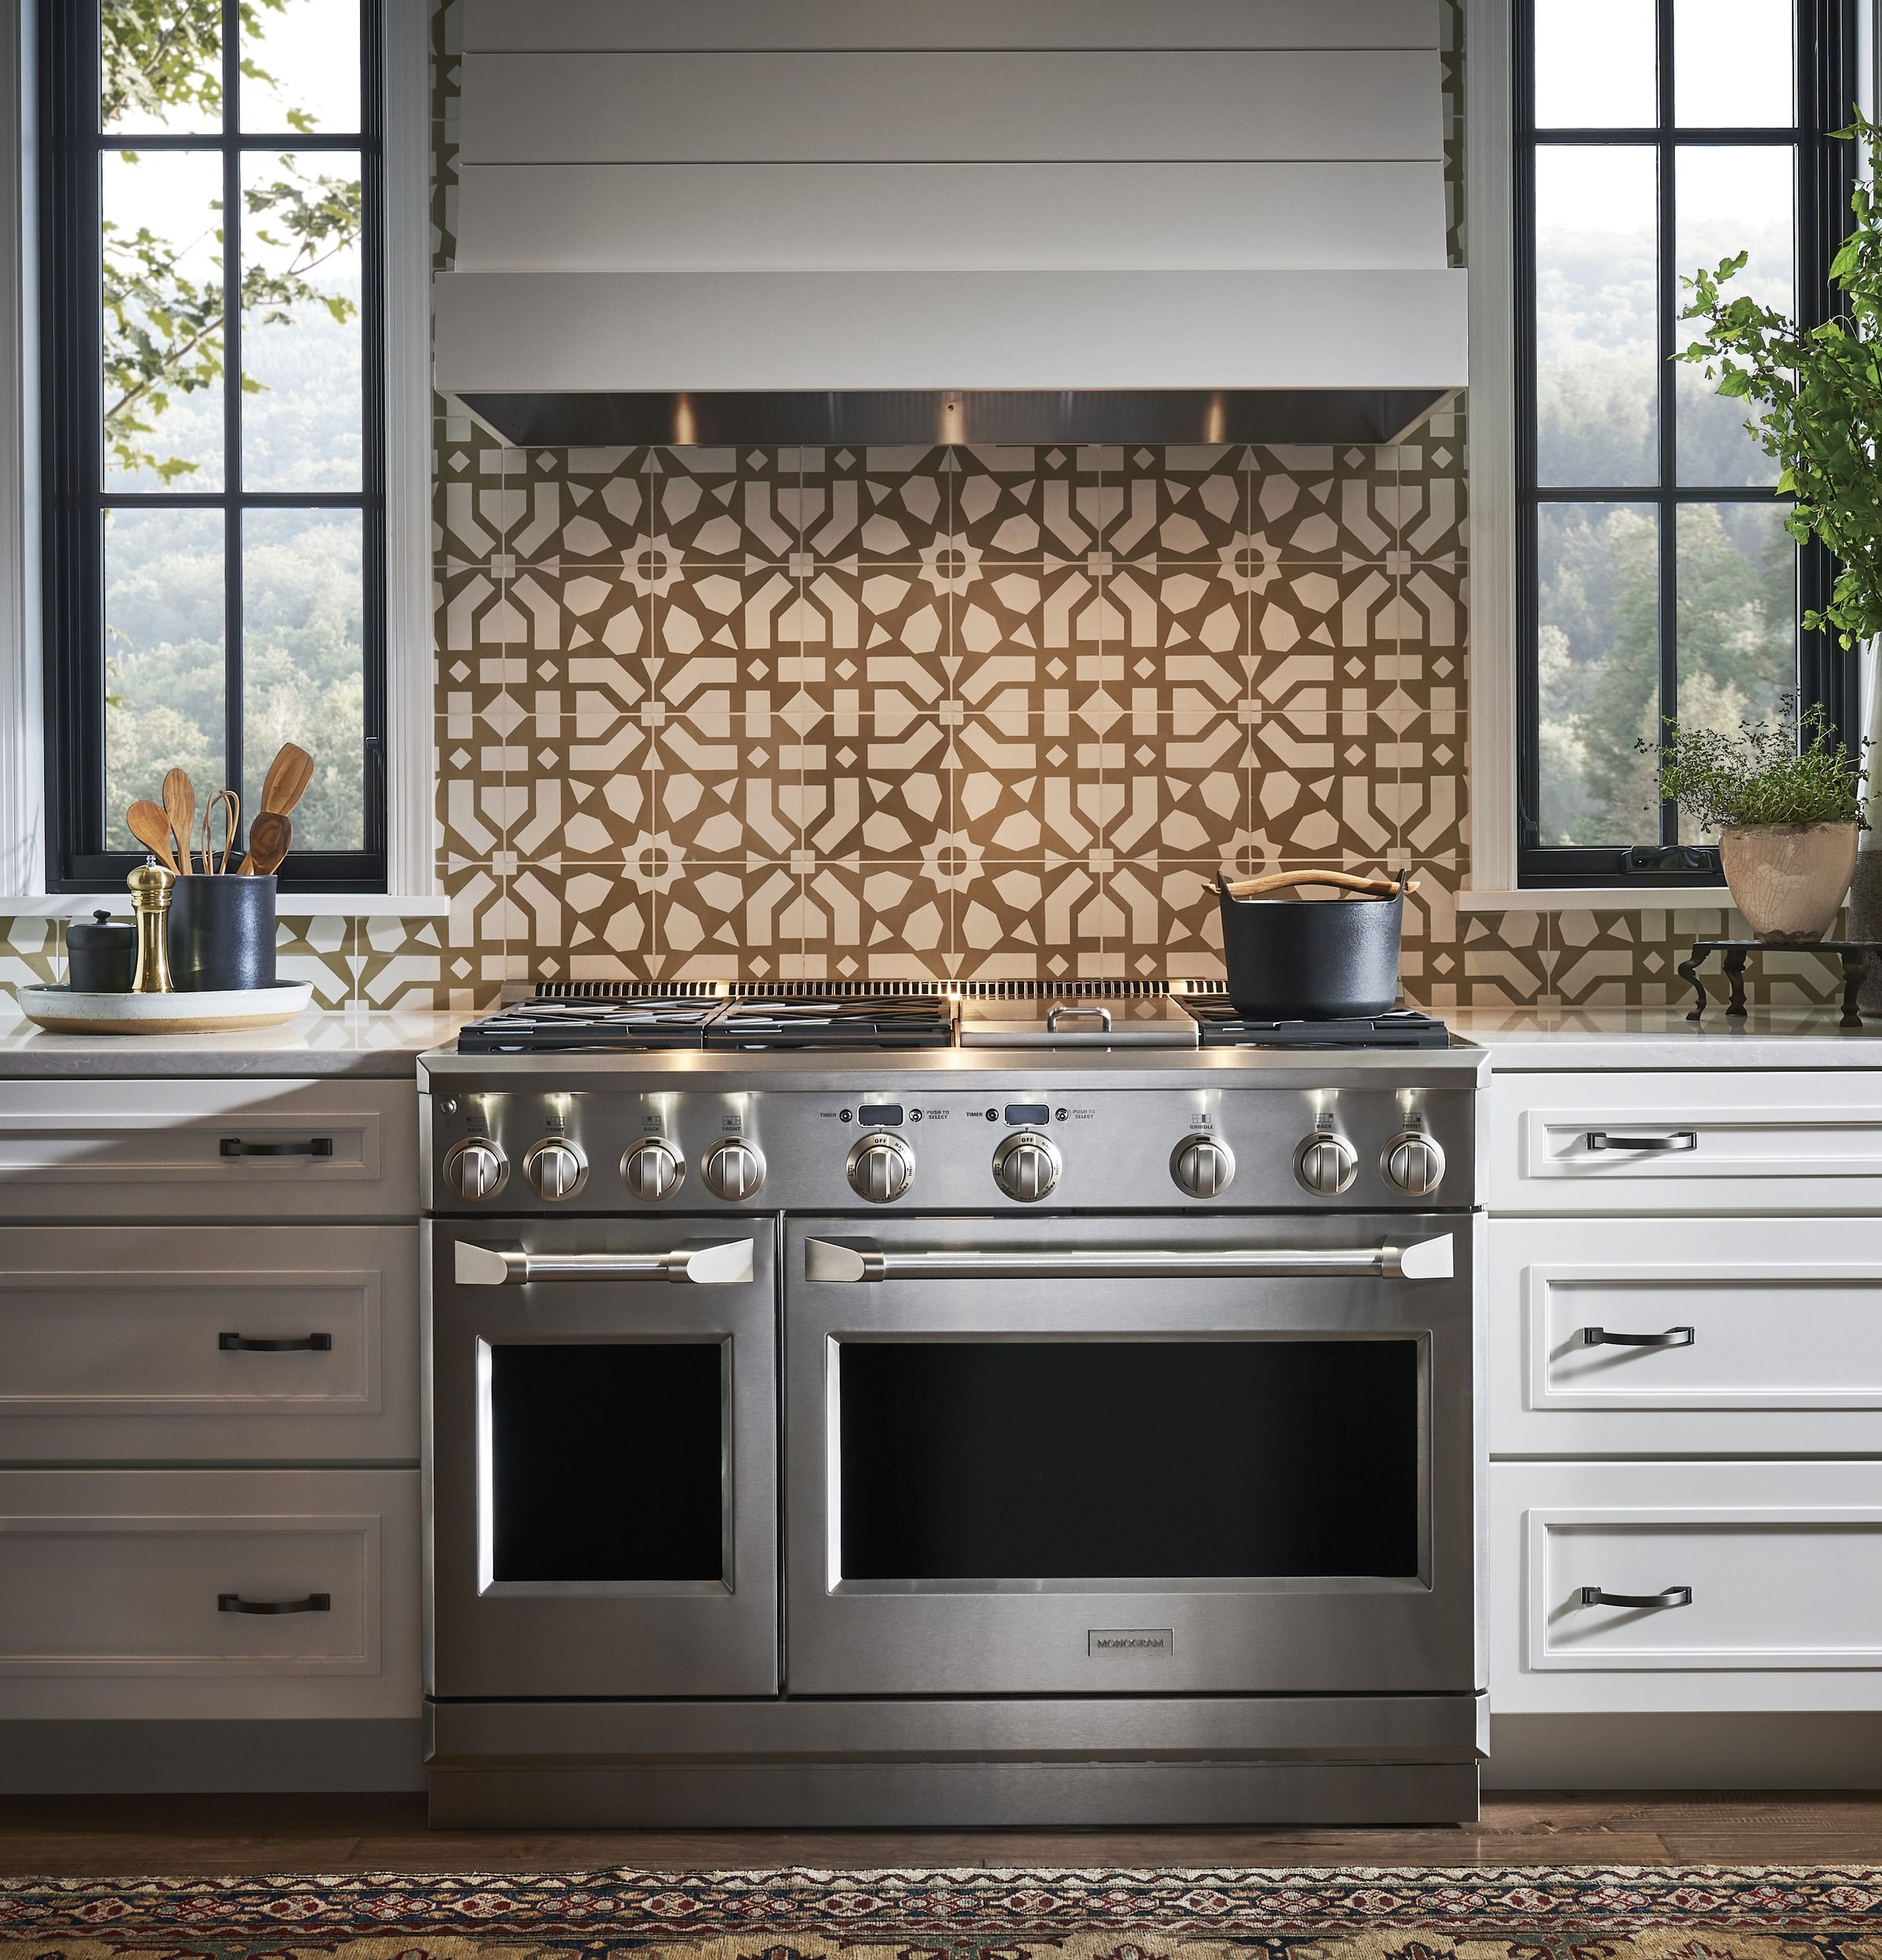 Zdp486ndpss Monogram 48 Dual Fuel Professional Range With 6 Burners And Griddle Natural Gas Monogram Appliances Ge Monogram Appliances Kitchen Appliances